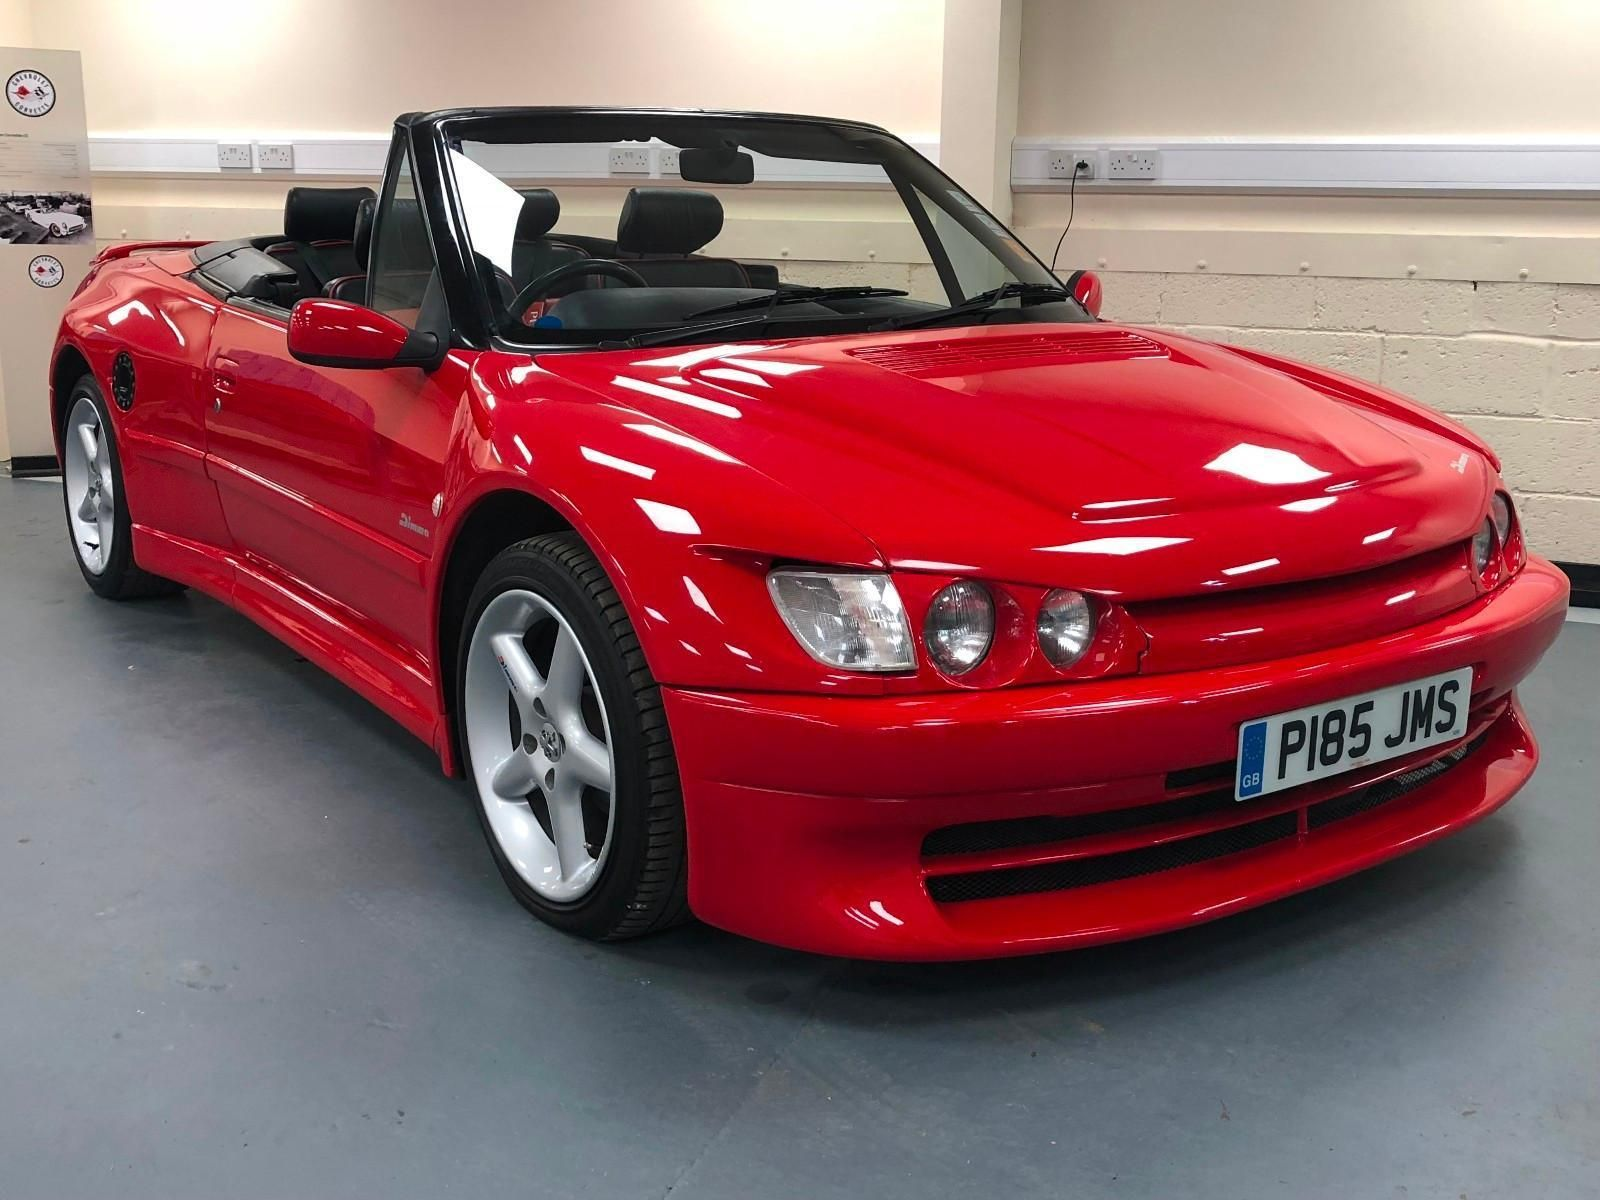 Peugeot 306 2 0i Cabriolet Dimma Prototype Number 1 Of 2 Built Ebay Coches Y Motocicletas Peugeot Autos